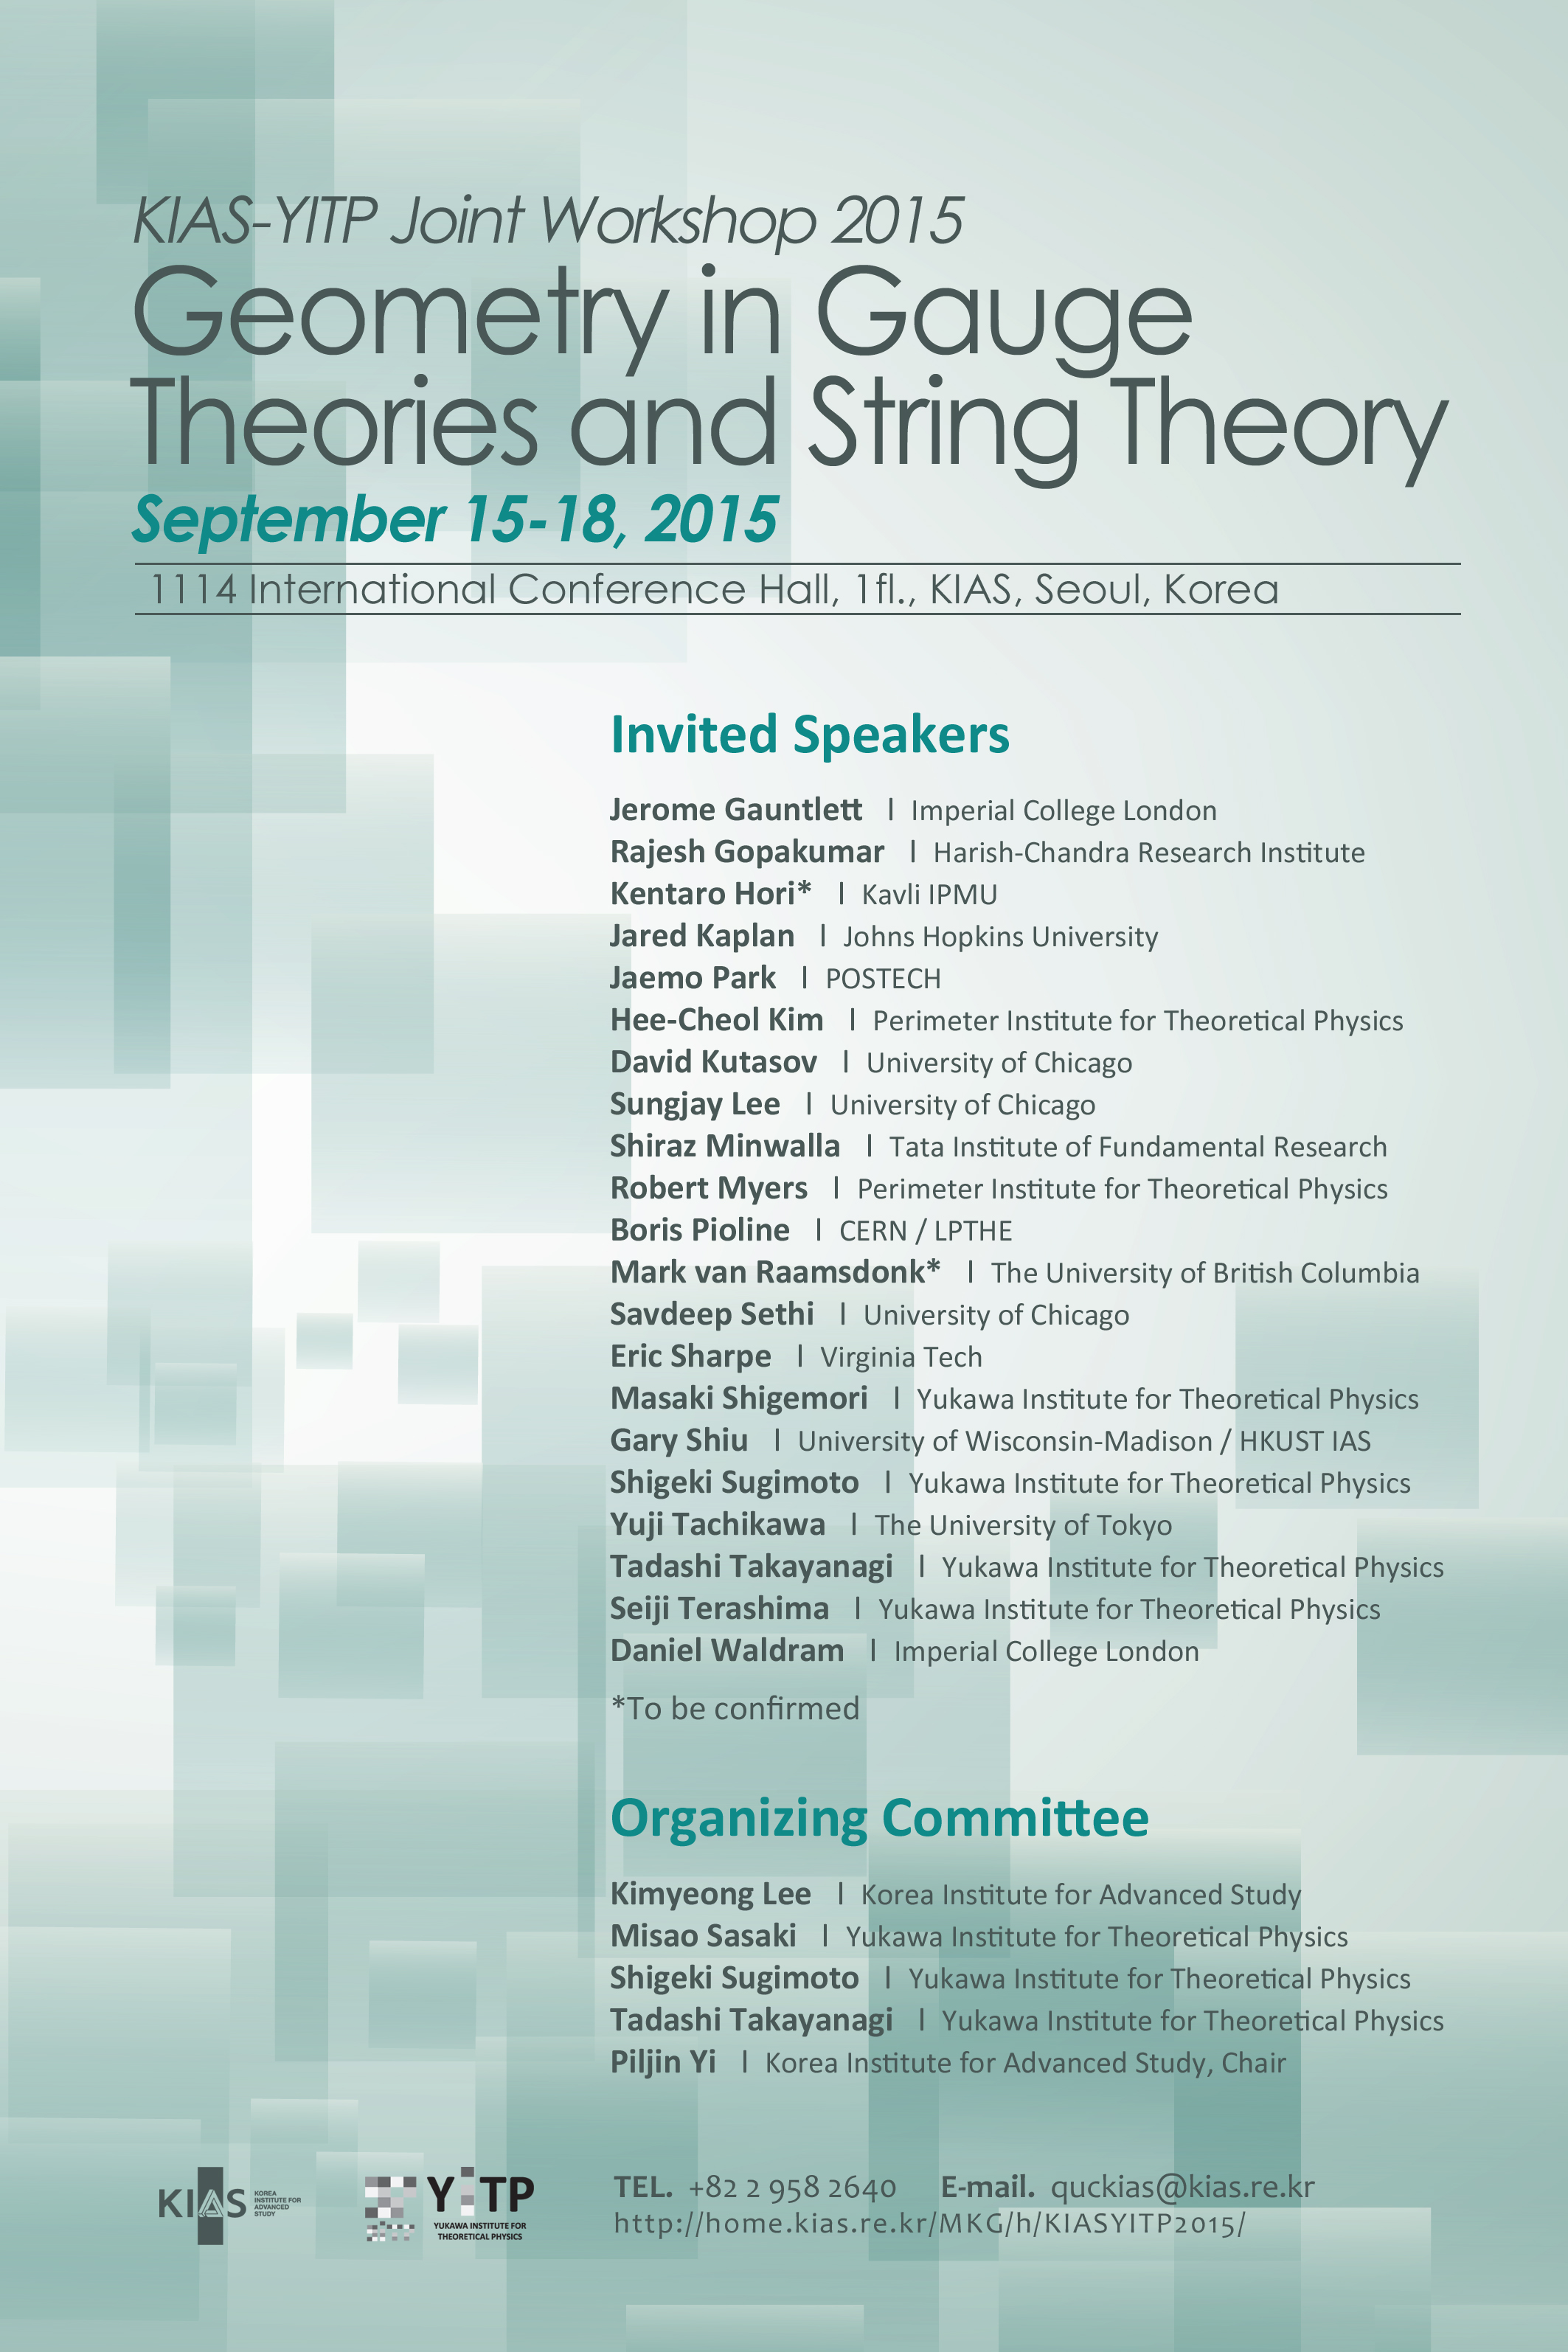 KIAS-YITP Joint Workshop 2015: Geometry in Gauge Theories and String Theory